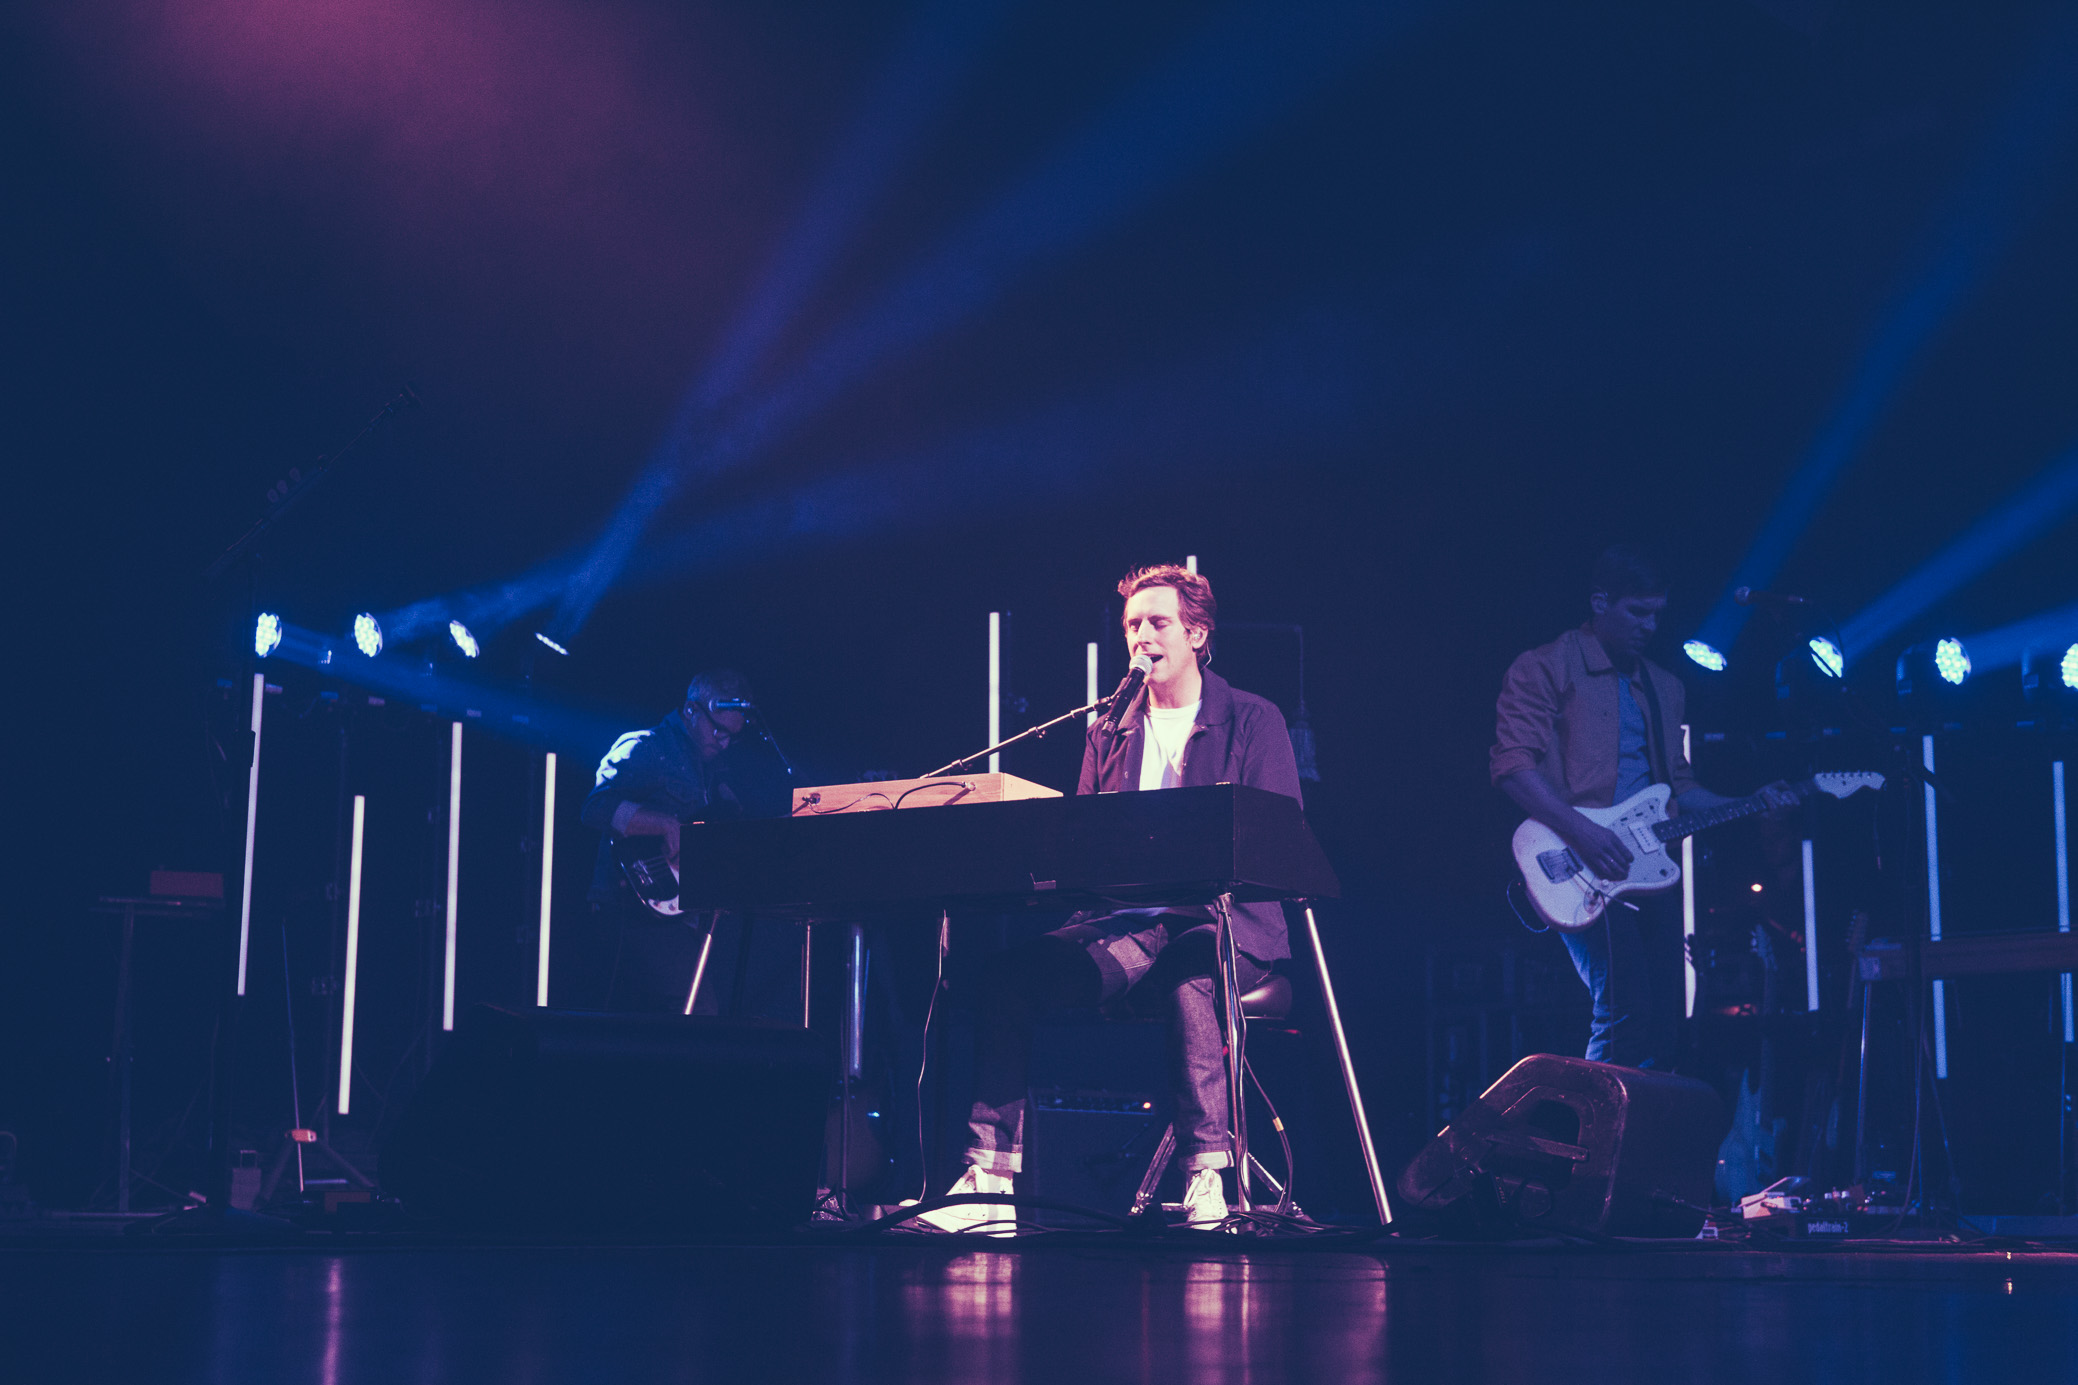 Ben Rector performs at The Alabama Theatre in Birmingham, Alabama on November 1st, 2018. (Photo by David A. Smith / DSmithScenes)